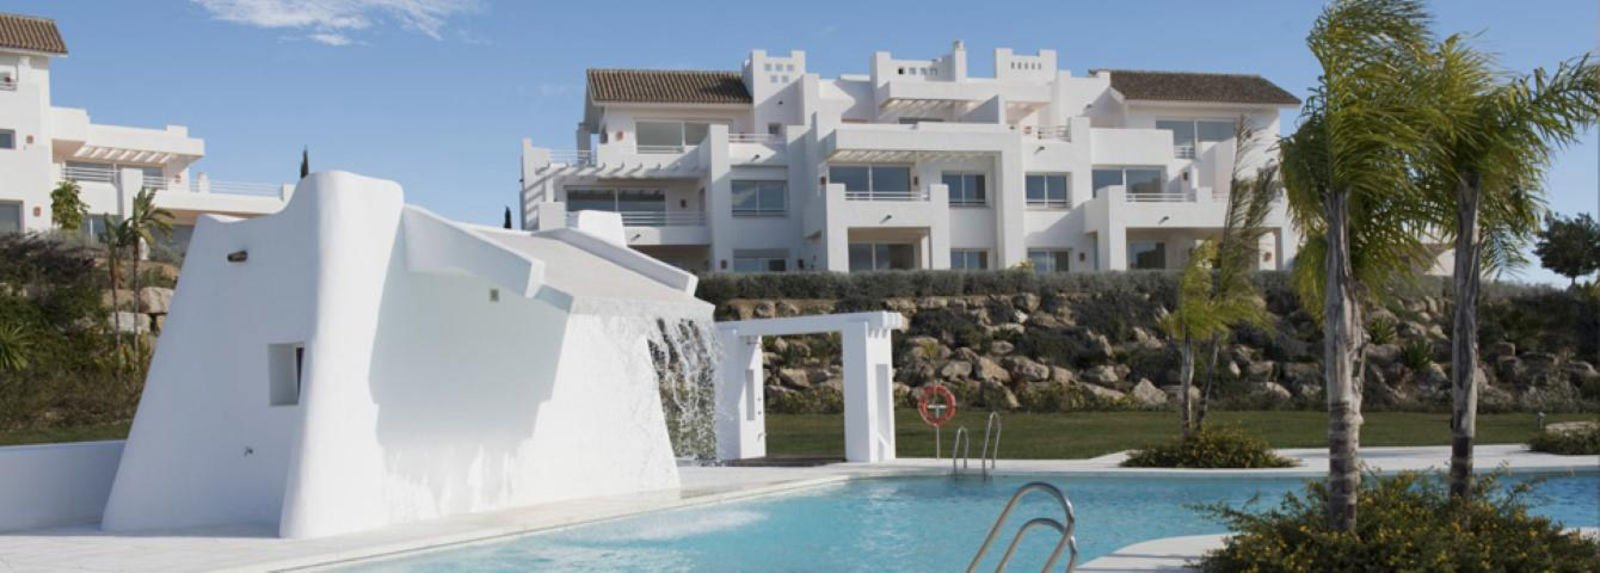 Nice new apartments at a beautiful oasis in Casares Estepona, living exclusive! Alcazaba Lagoon